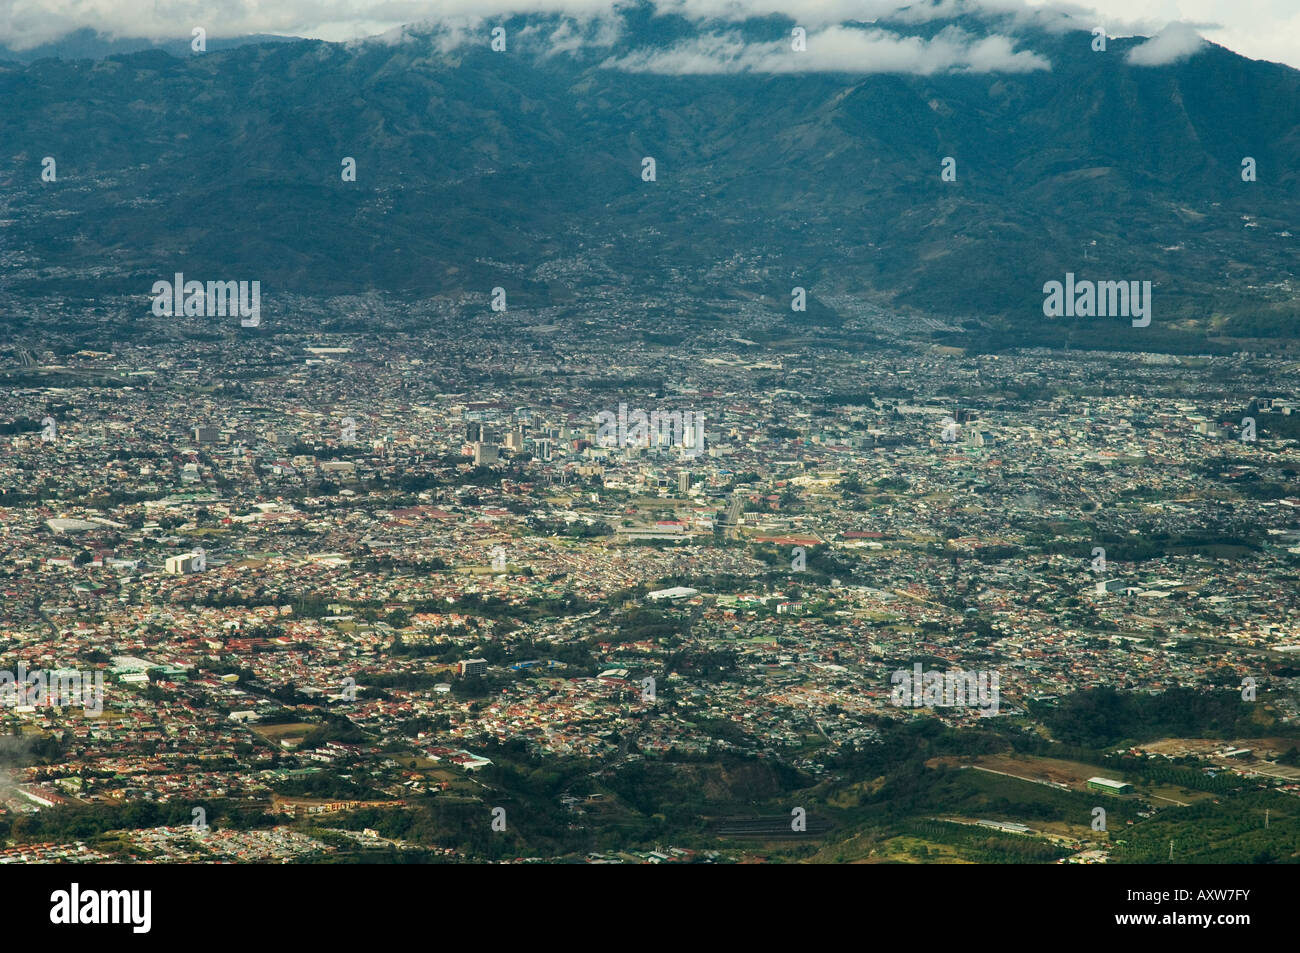 Près de San Jose à partir de l'air, Costa Rica Photo Stock